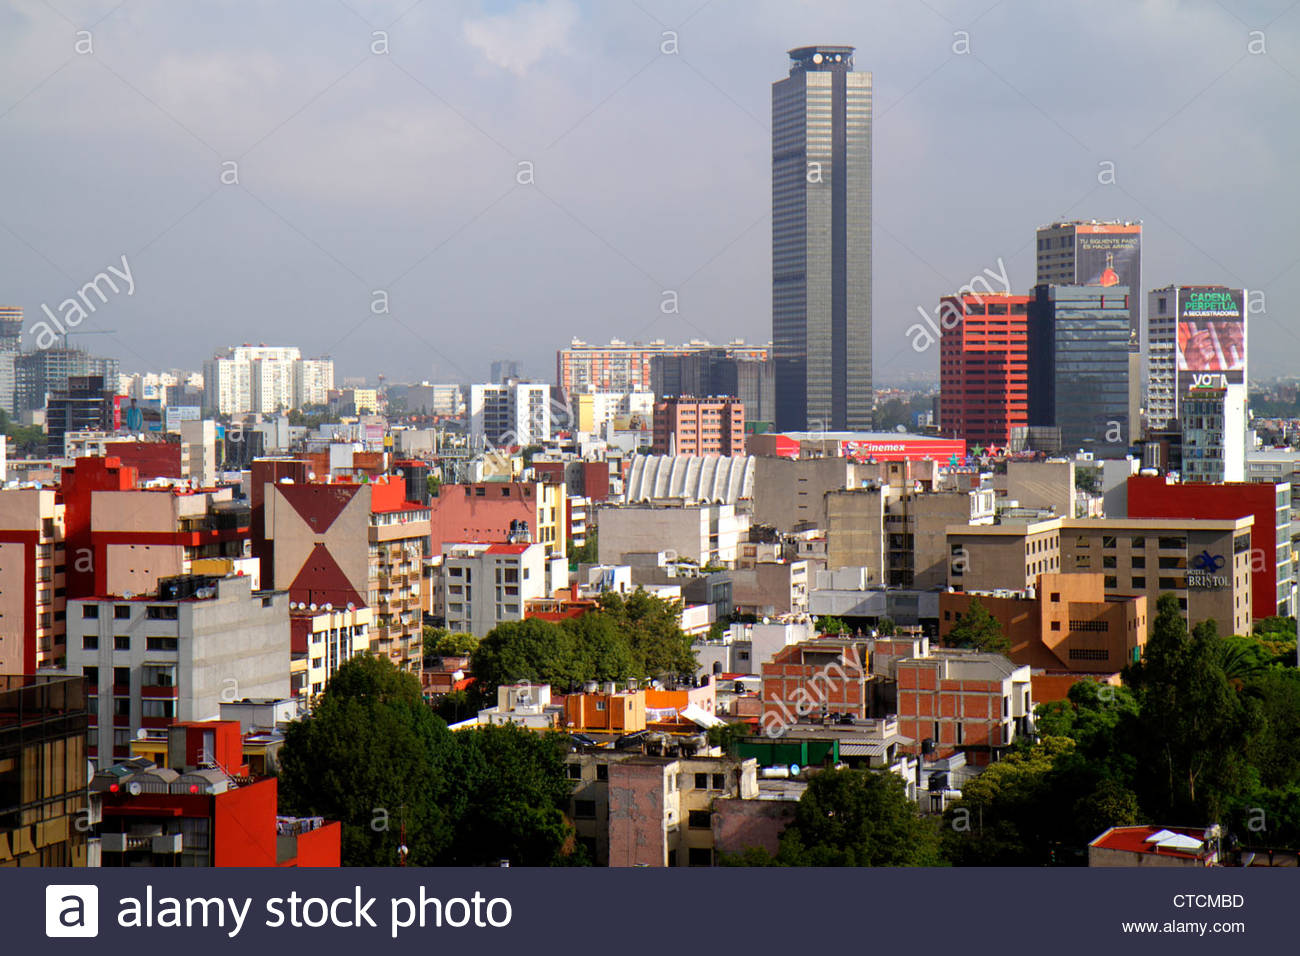 stock and mexico city essay View homework help - companies listed on the stock exchange in mexico from acc 124 at accounting institute seminar  companies listed on the stock exchange in mexico city must provide annual audited.